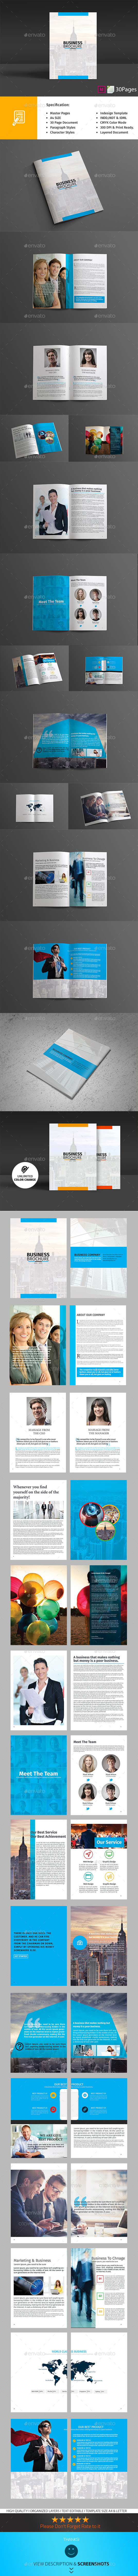 Business Solution Brochure - 30 Pages - Corporate Brochures